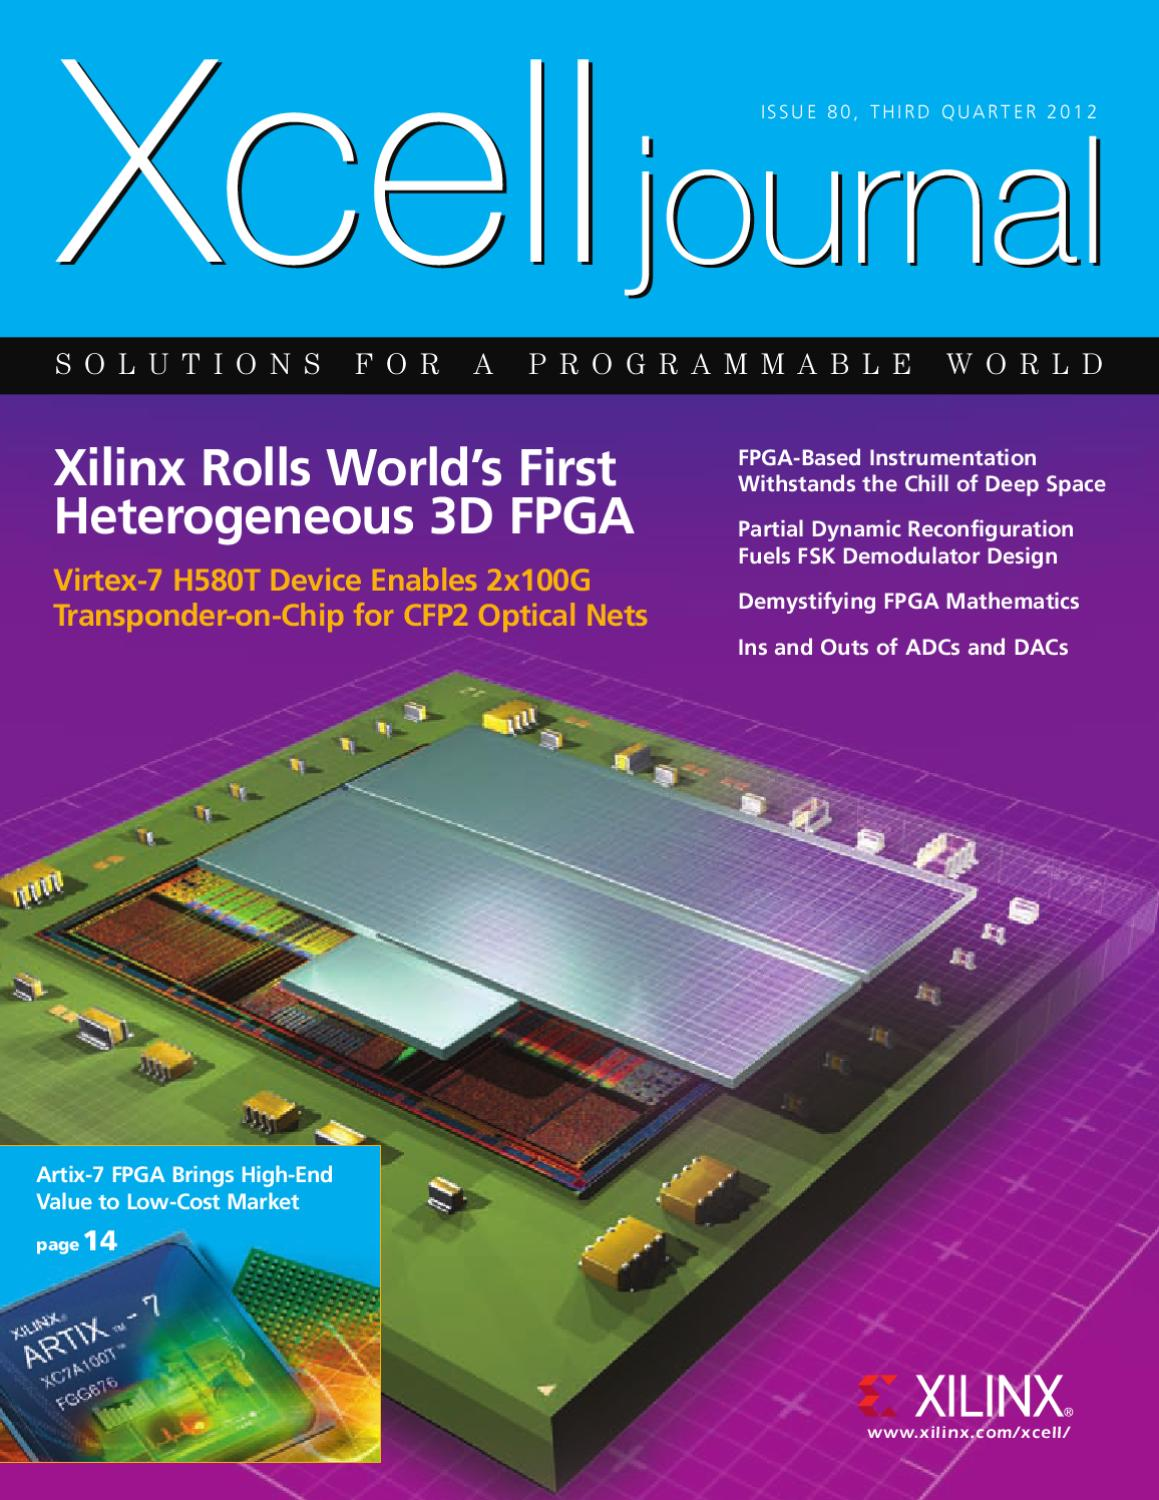 Xcell Journal Issue 80 By Xilinx Publications Issuu 2r Ladder Dac Public Circuit Online Simulator